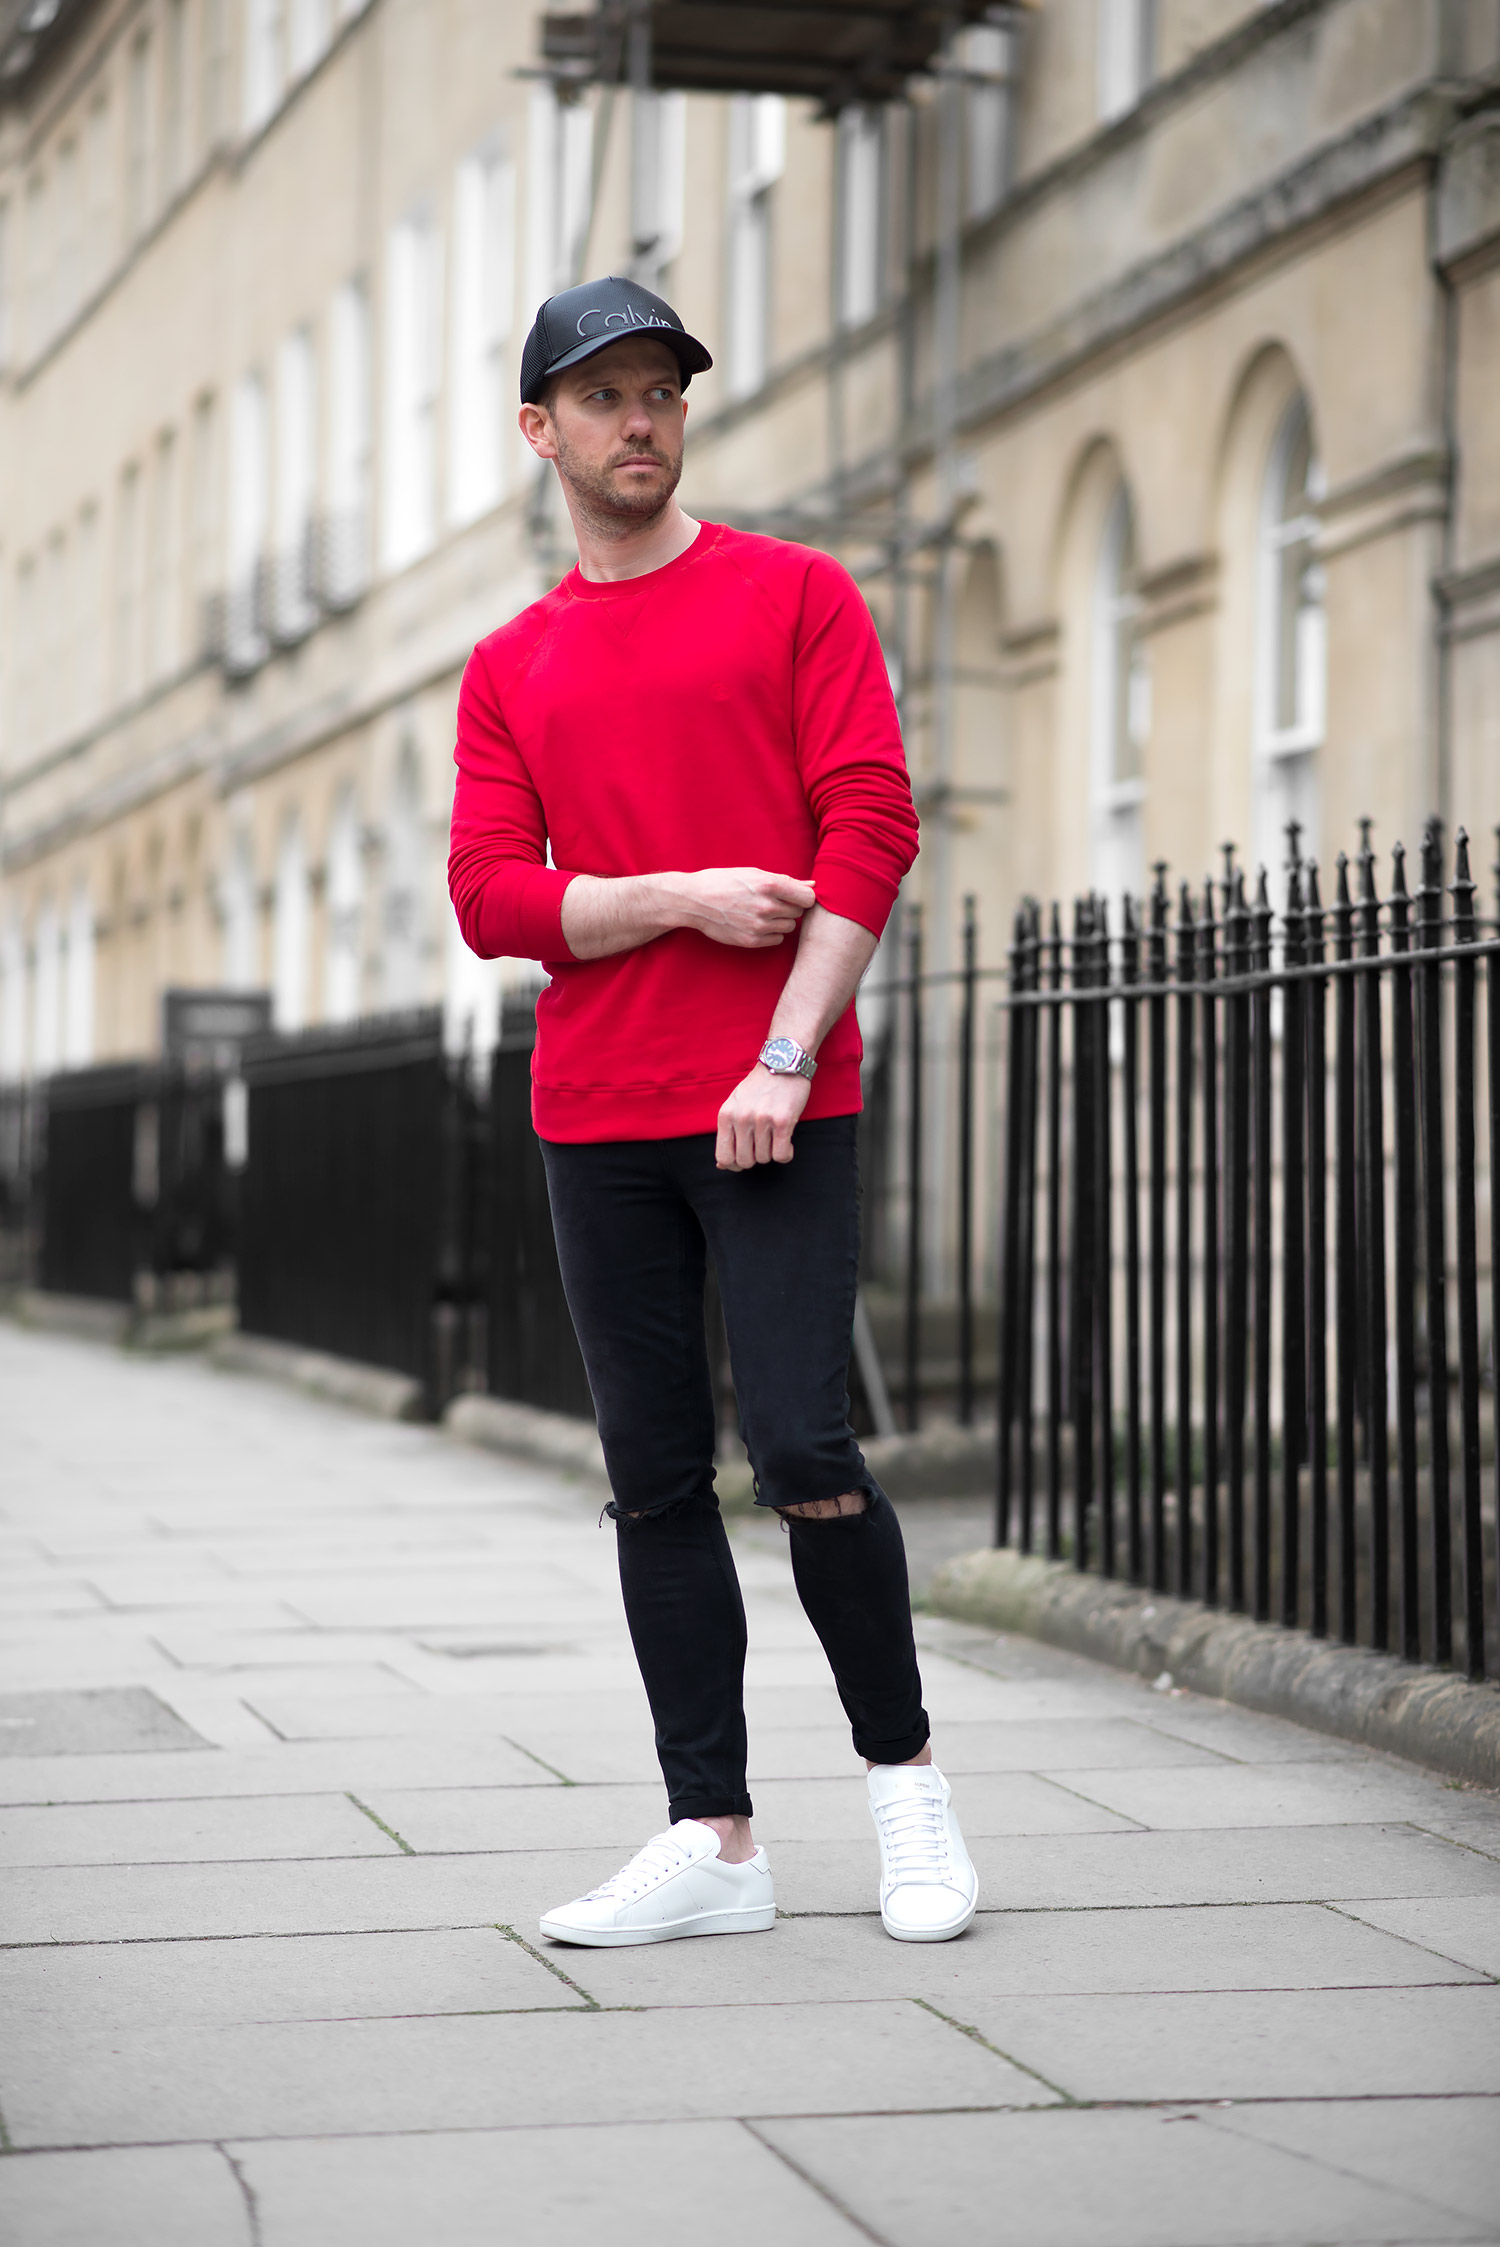 Tom Cridland Red Sweatshirt And Black Skinny Jeans Outfit | Your Average Guy